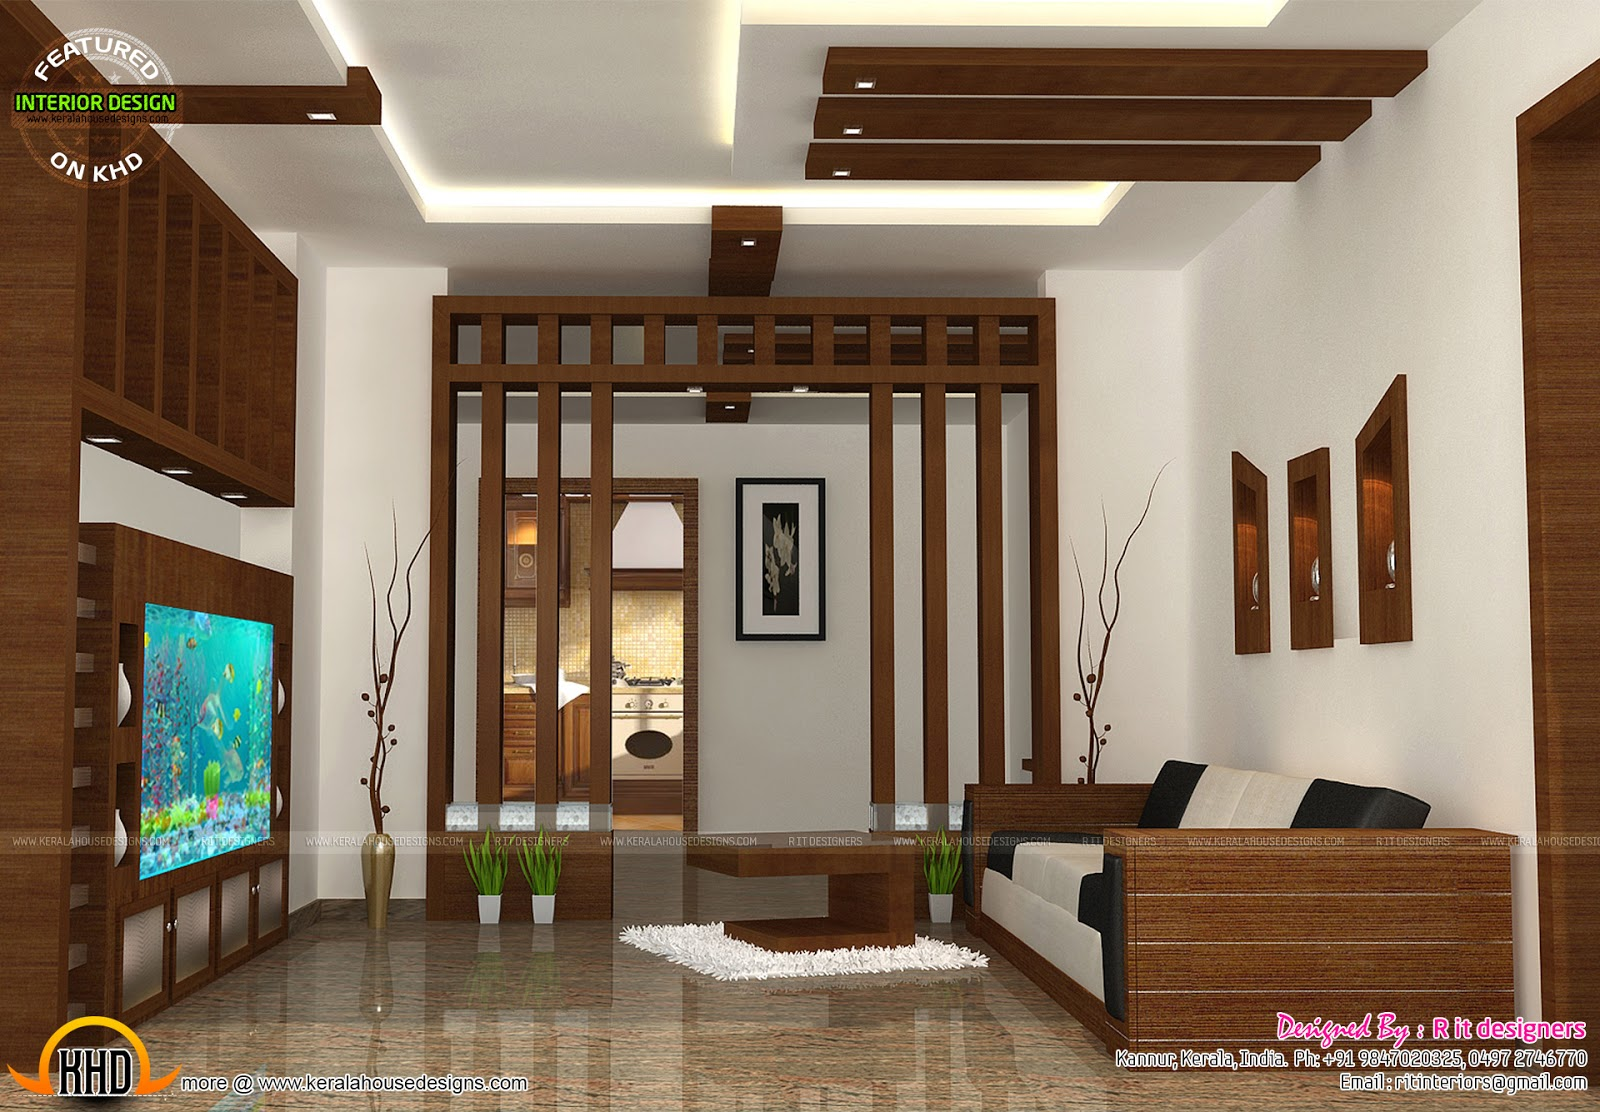 home interior design in kerala wooden finish interiors kerala home design and floor plans 24041